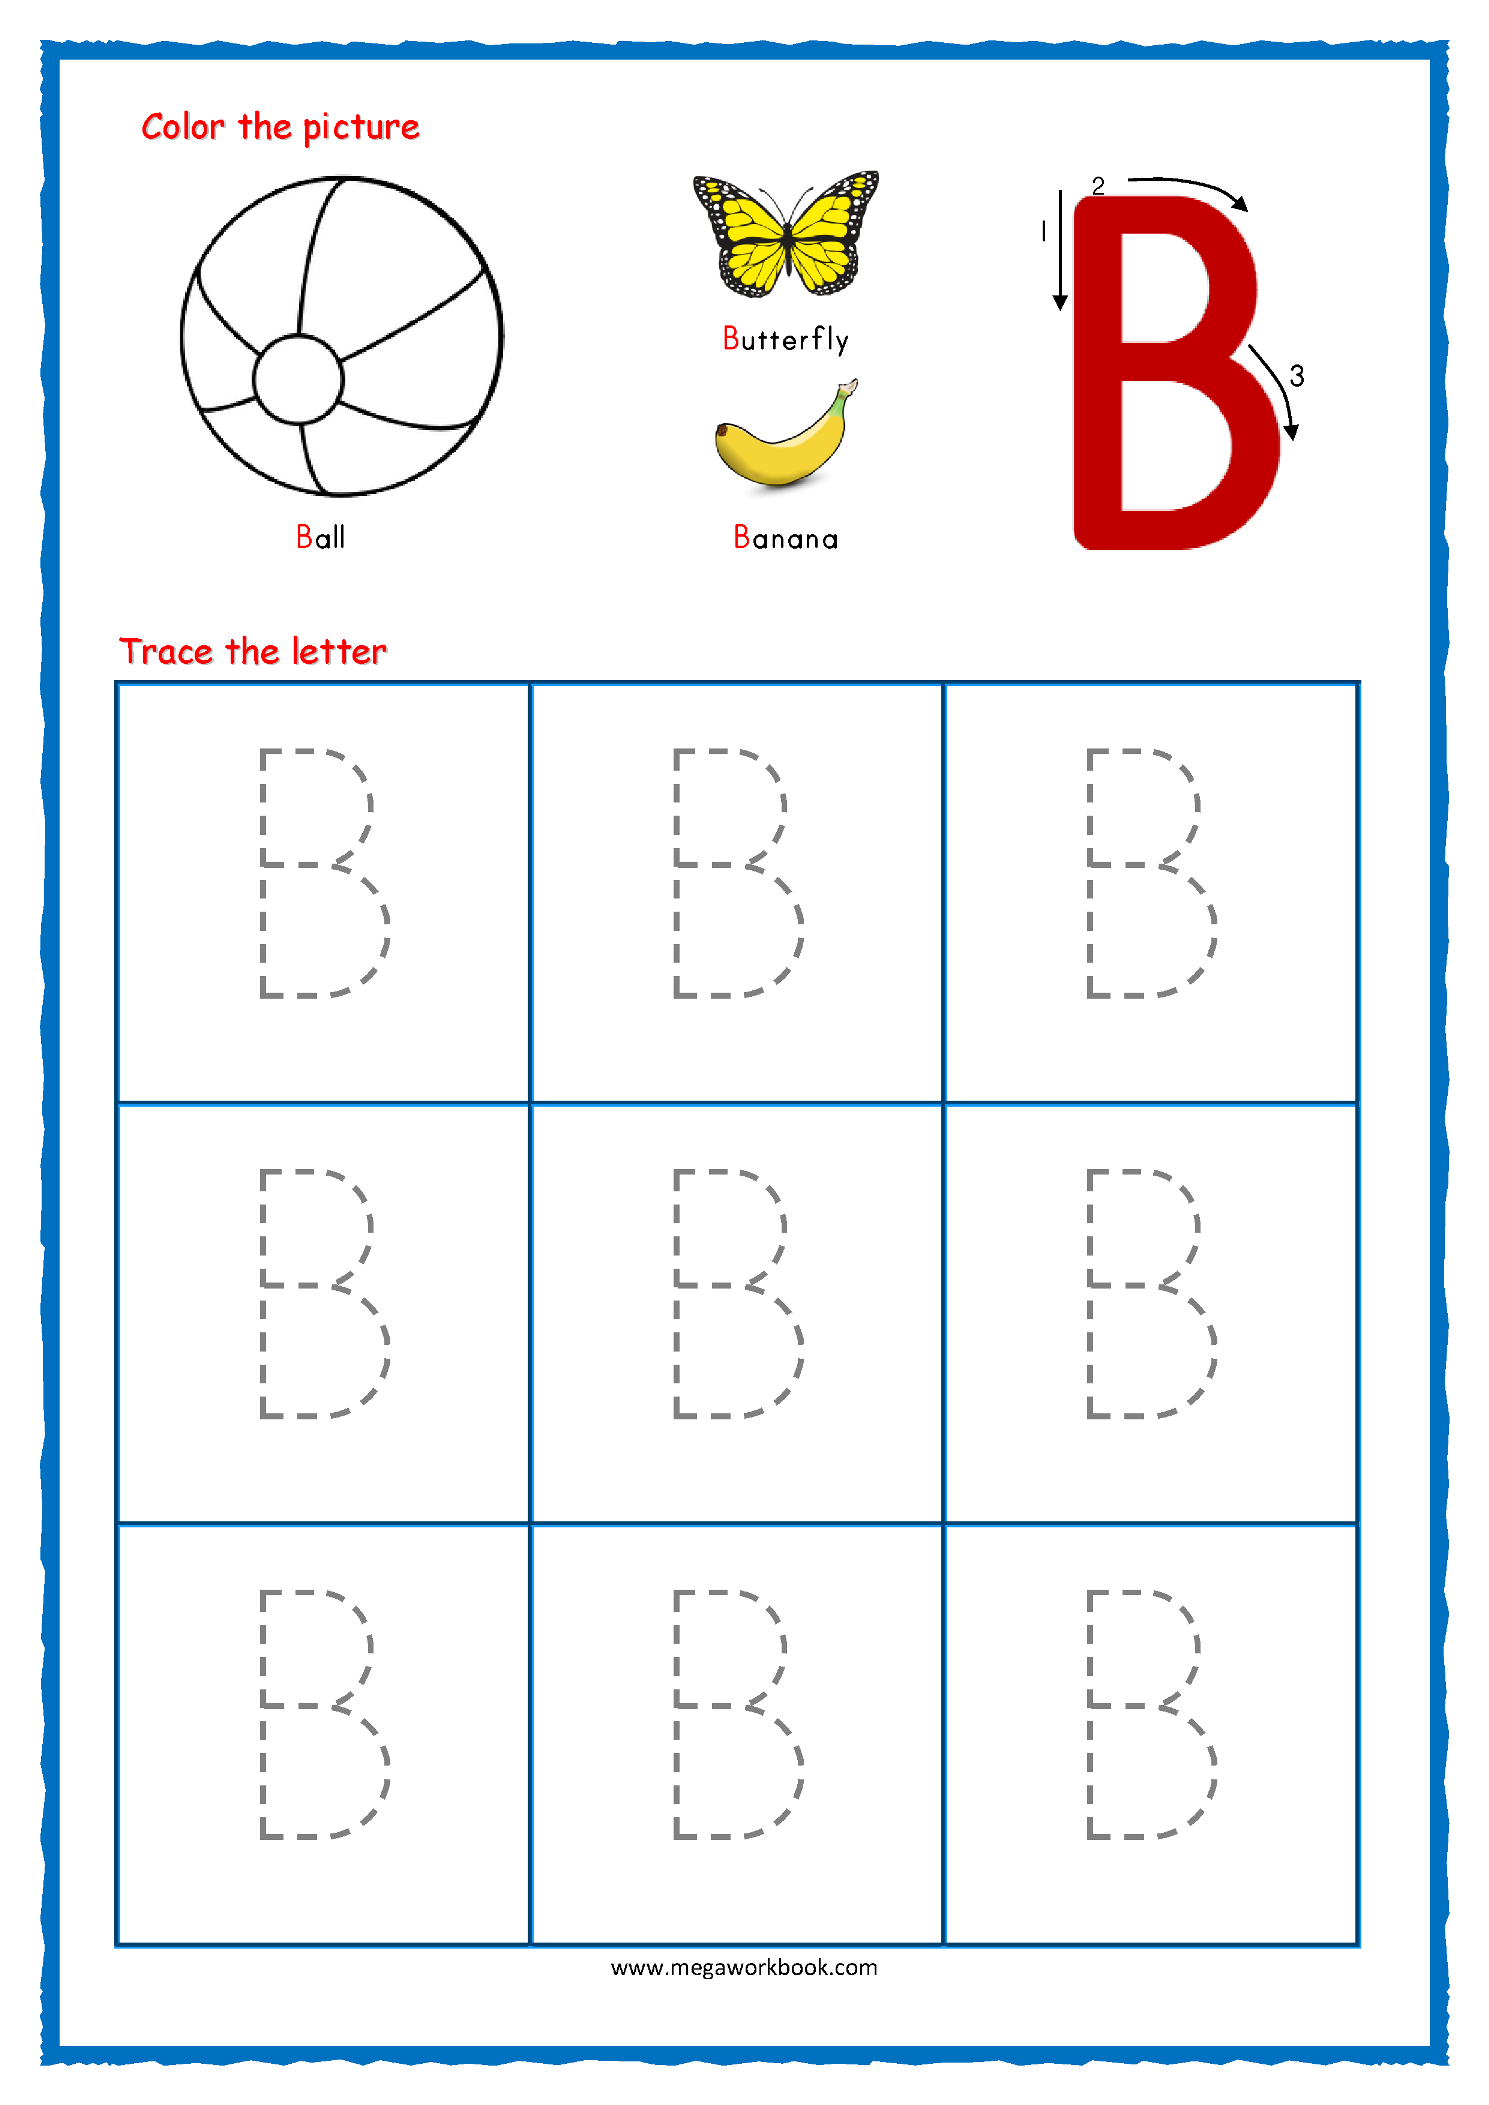 Tracing Letters - Alphabet Tracing - Capital Letters with regard to Pre K Alphabet Tracing